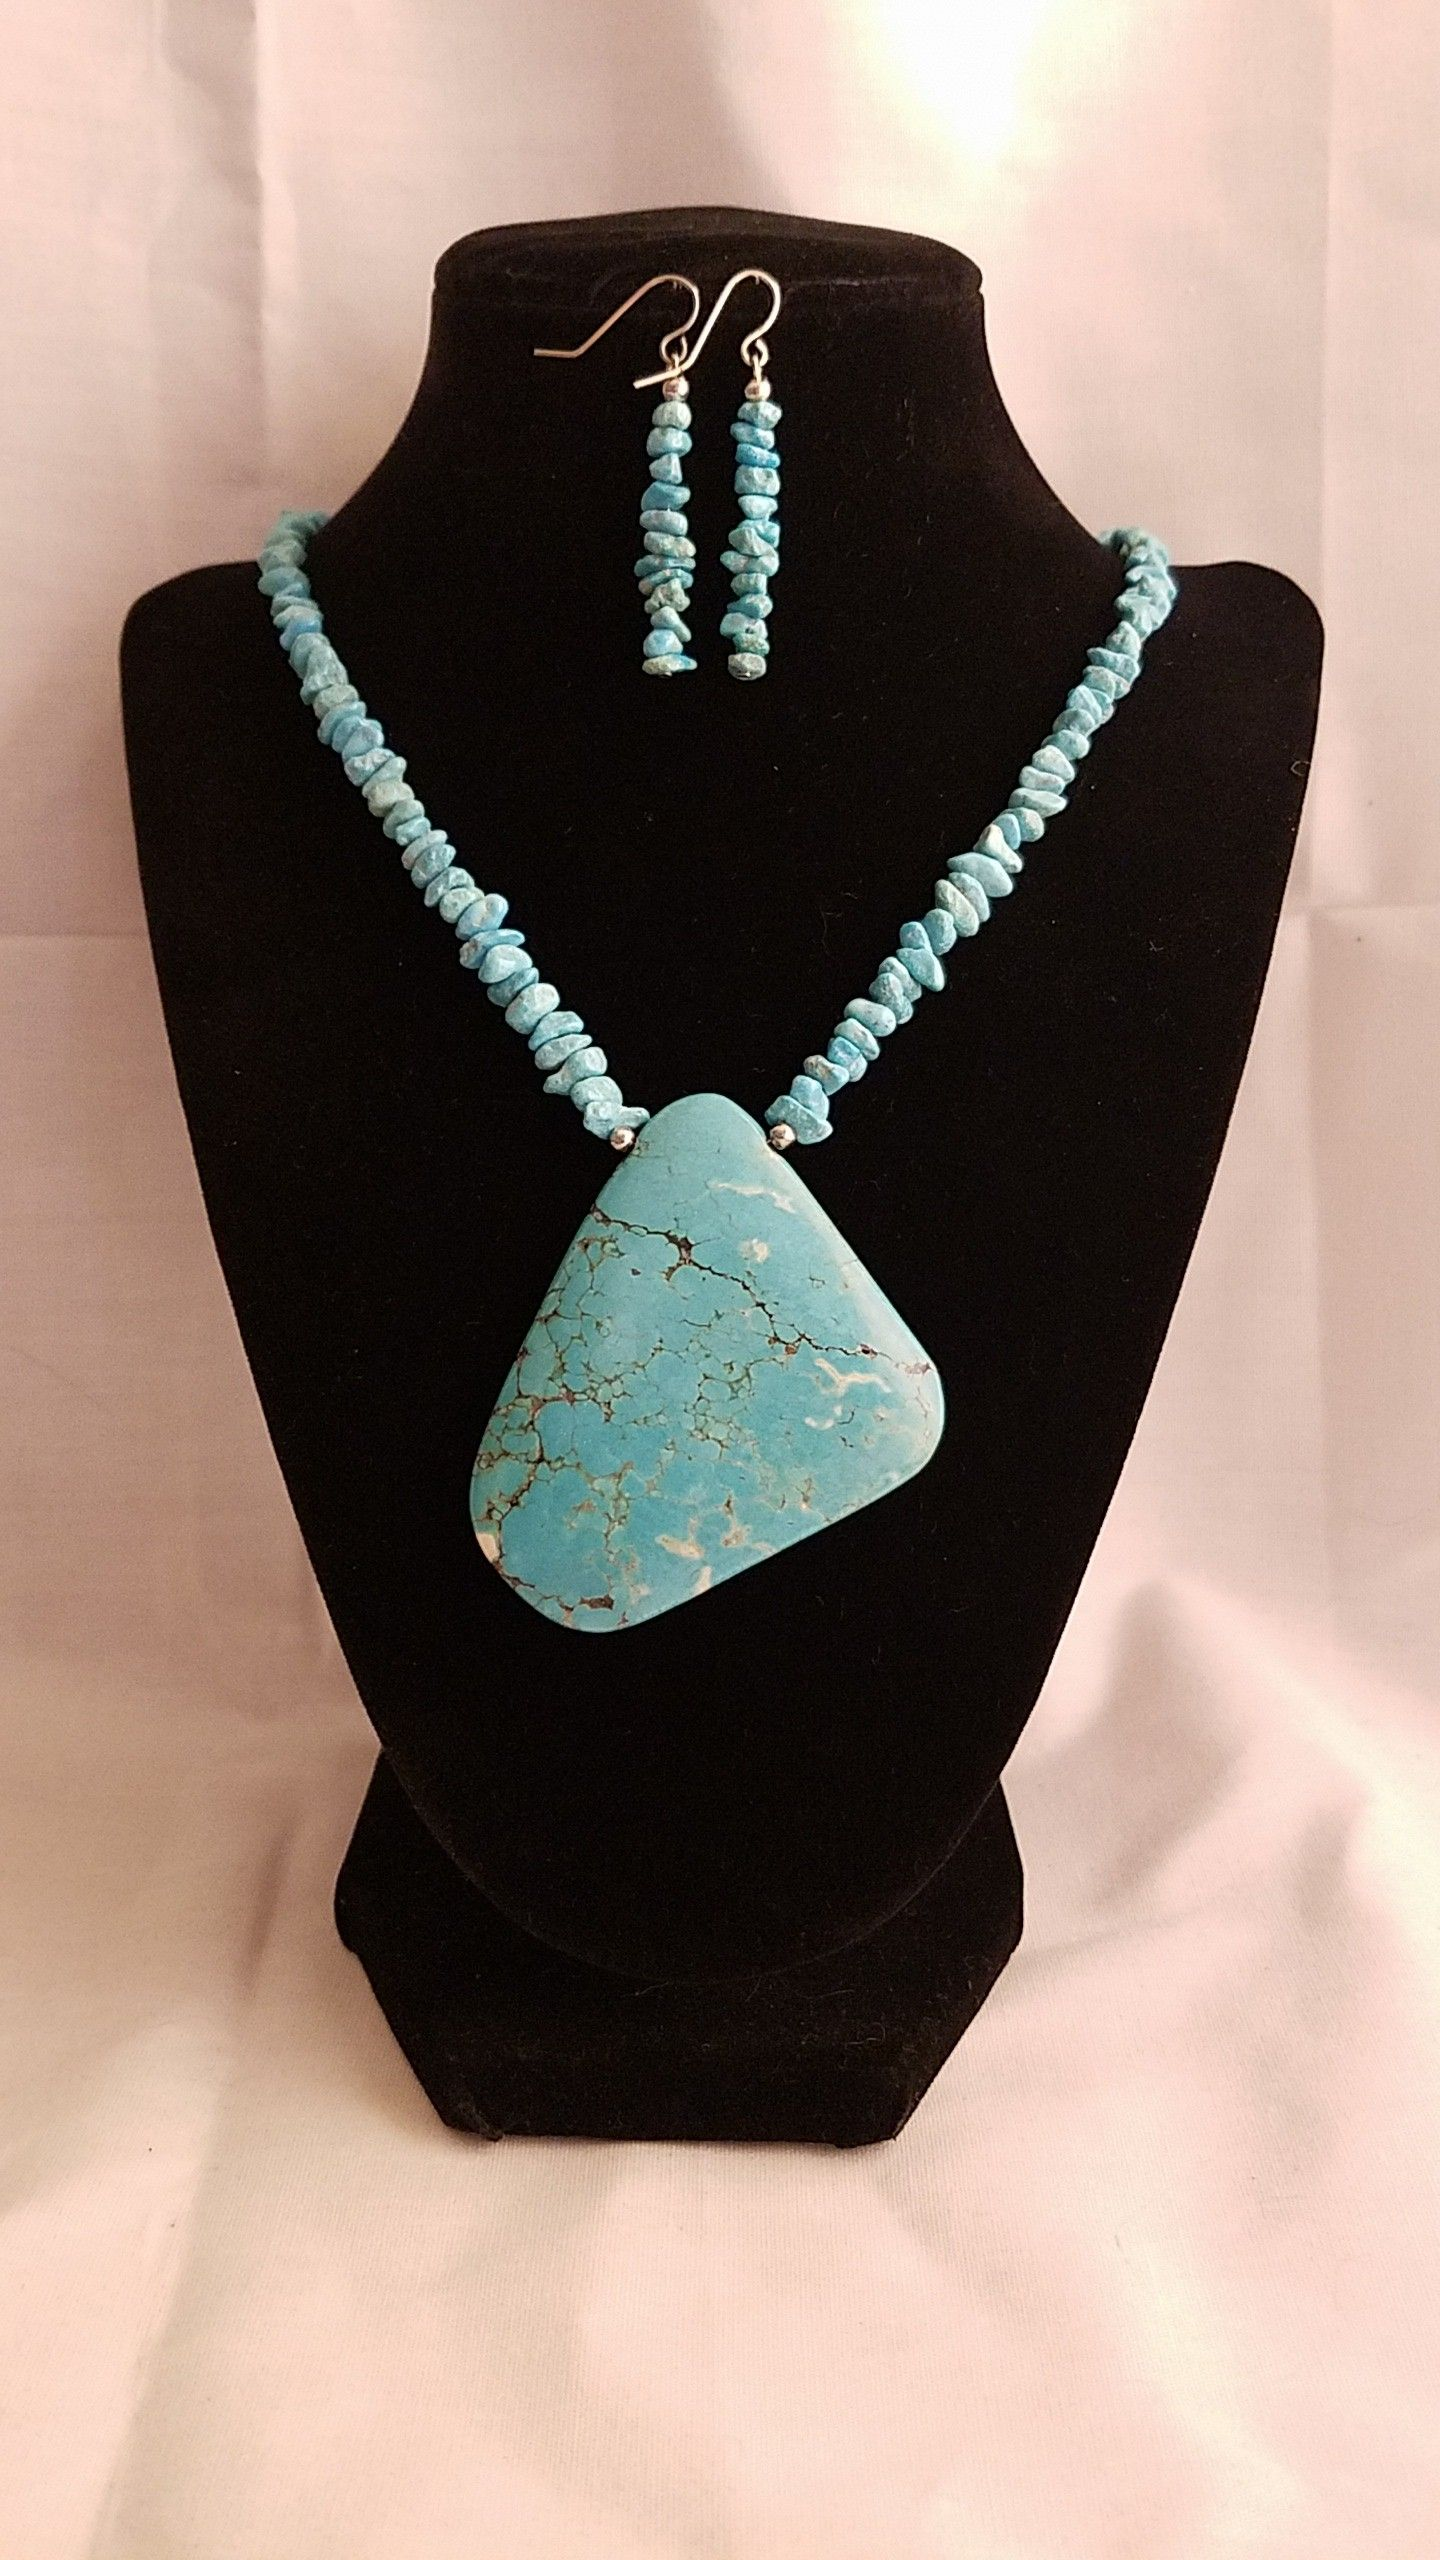 The azure tribute turquoise necklace is rich with color and will add